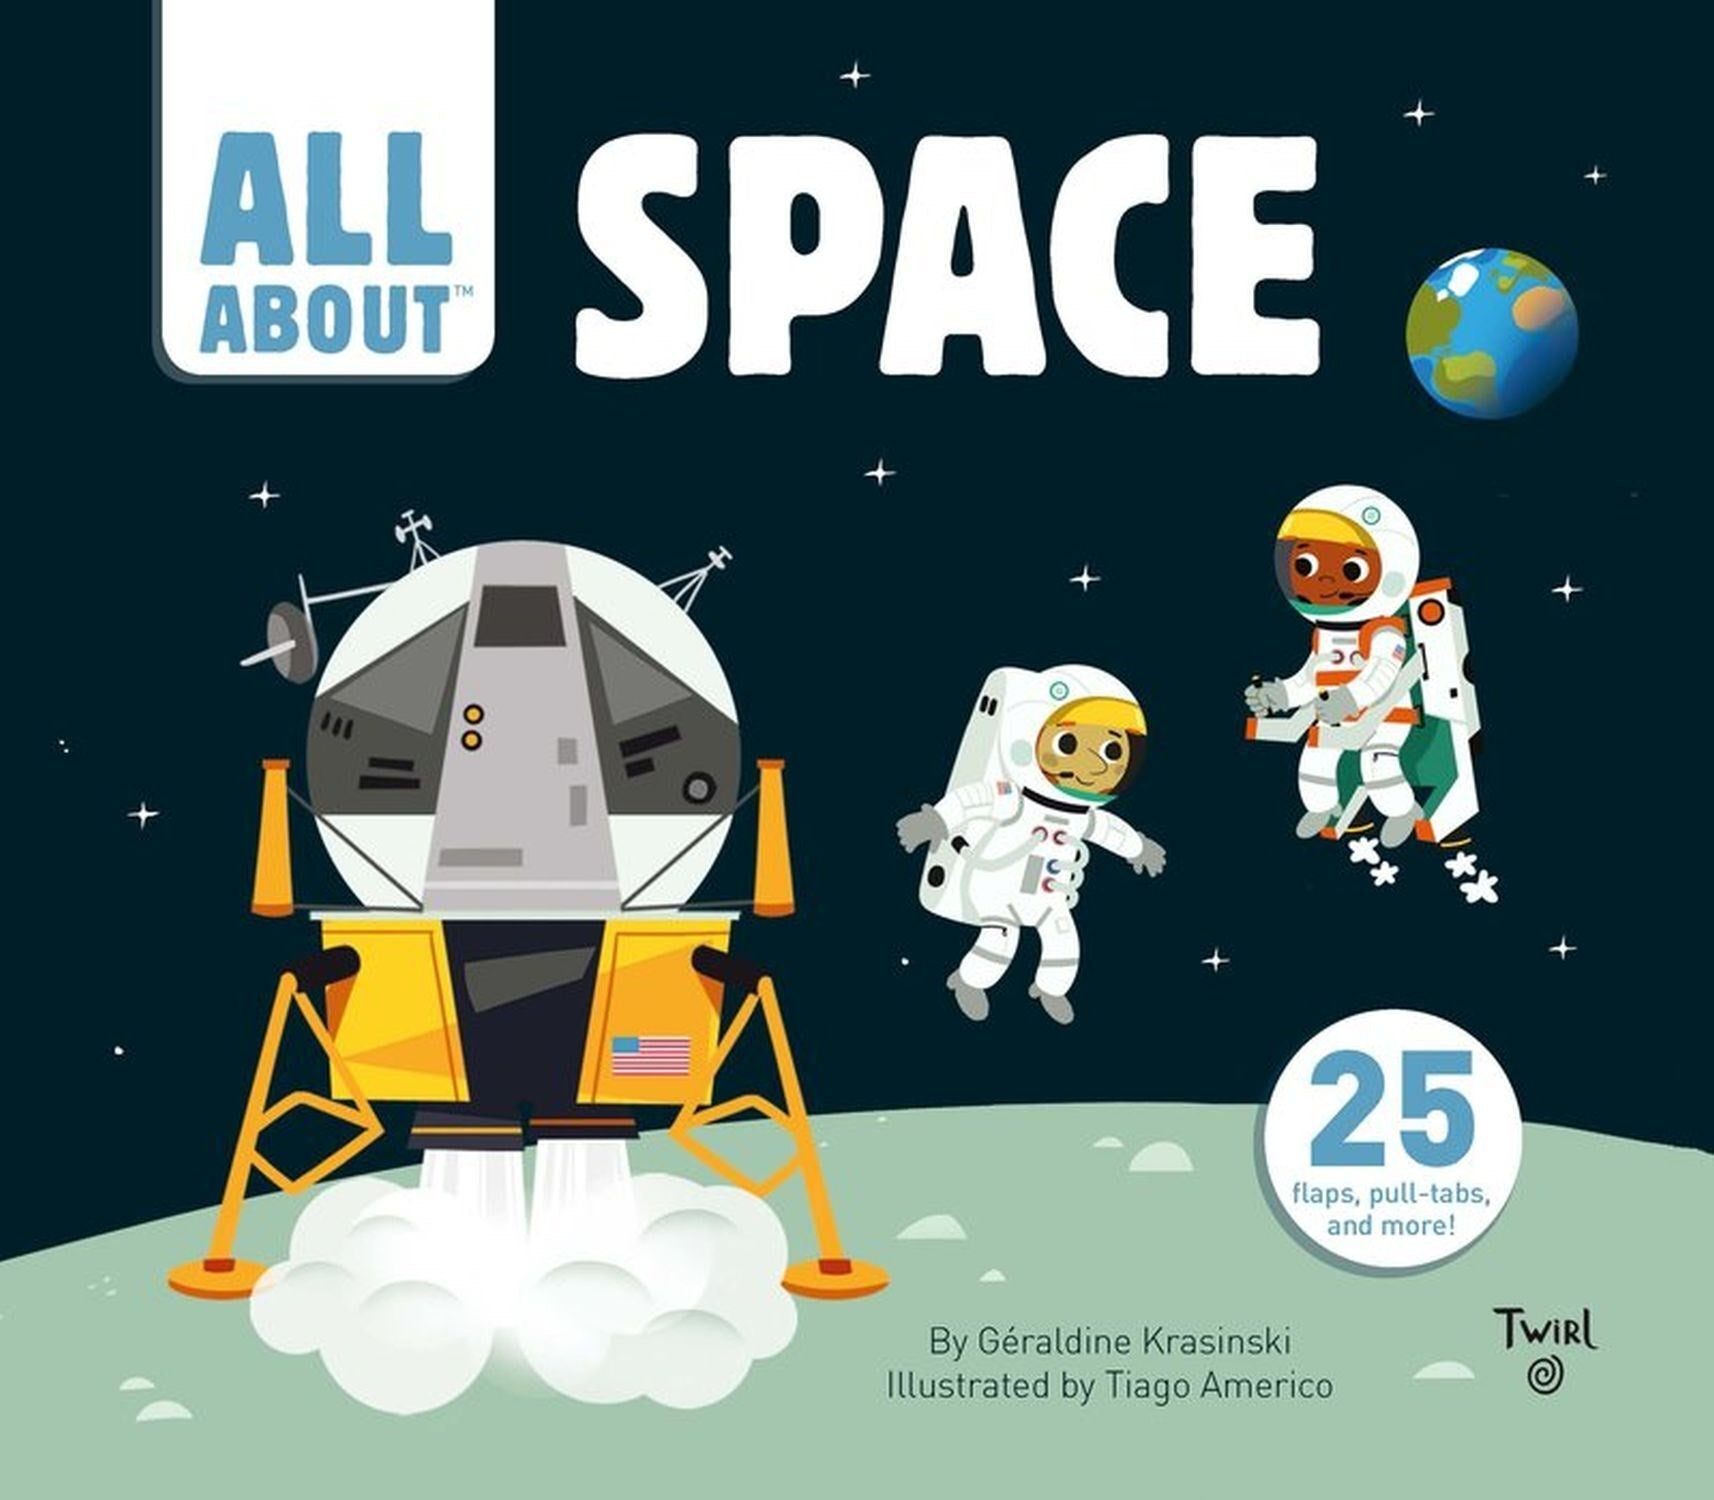 All About Space Book